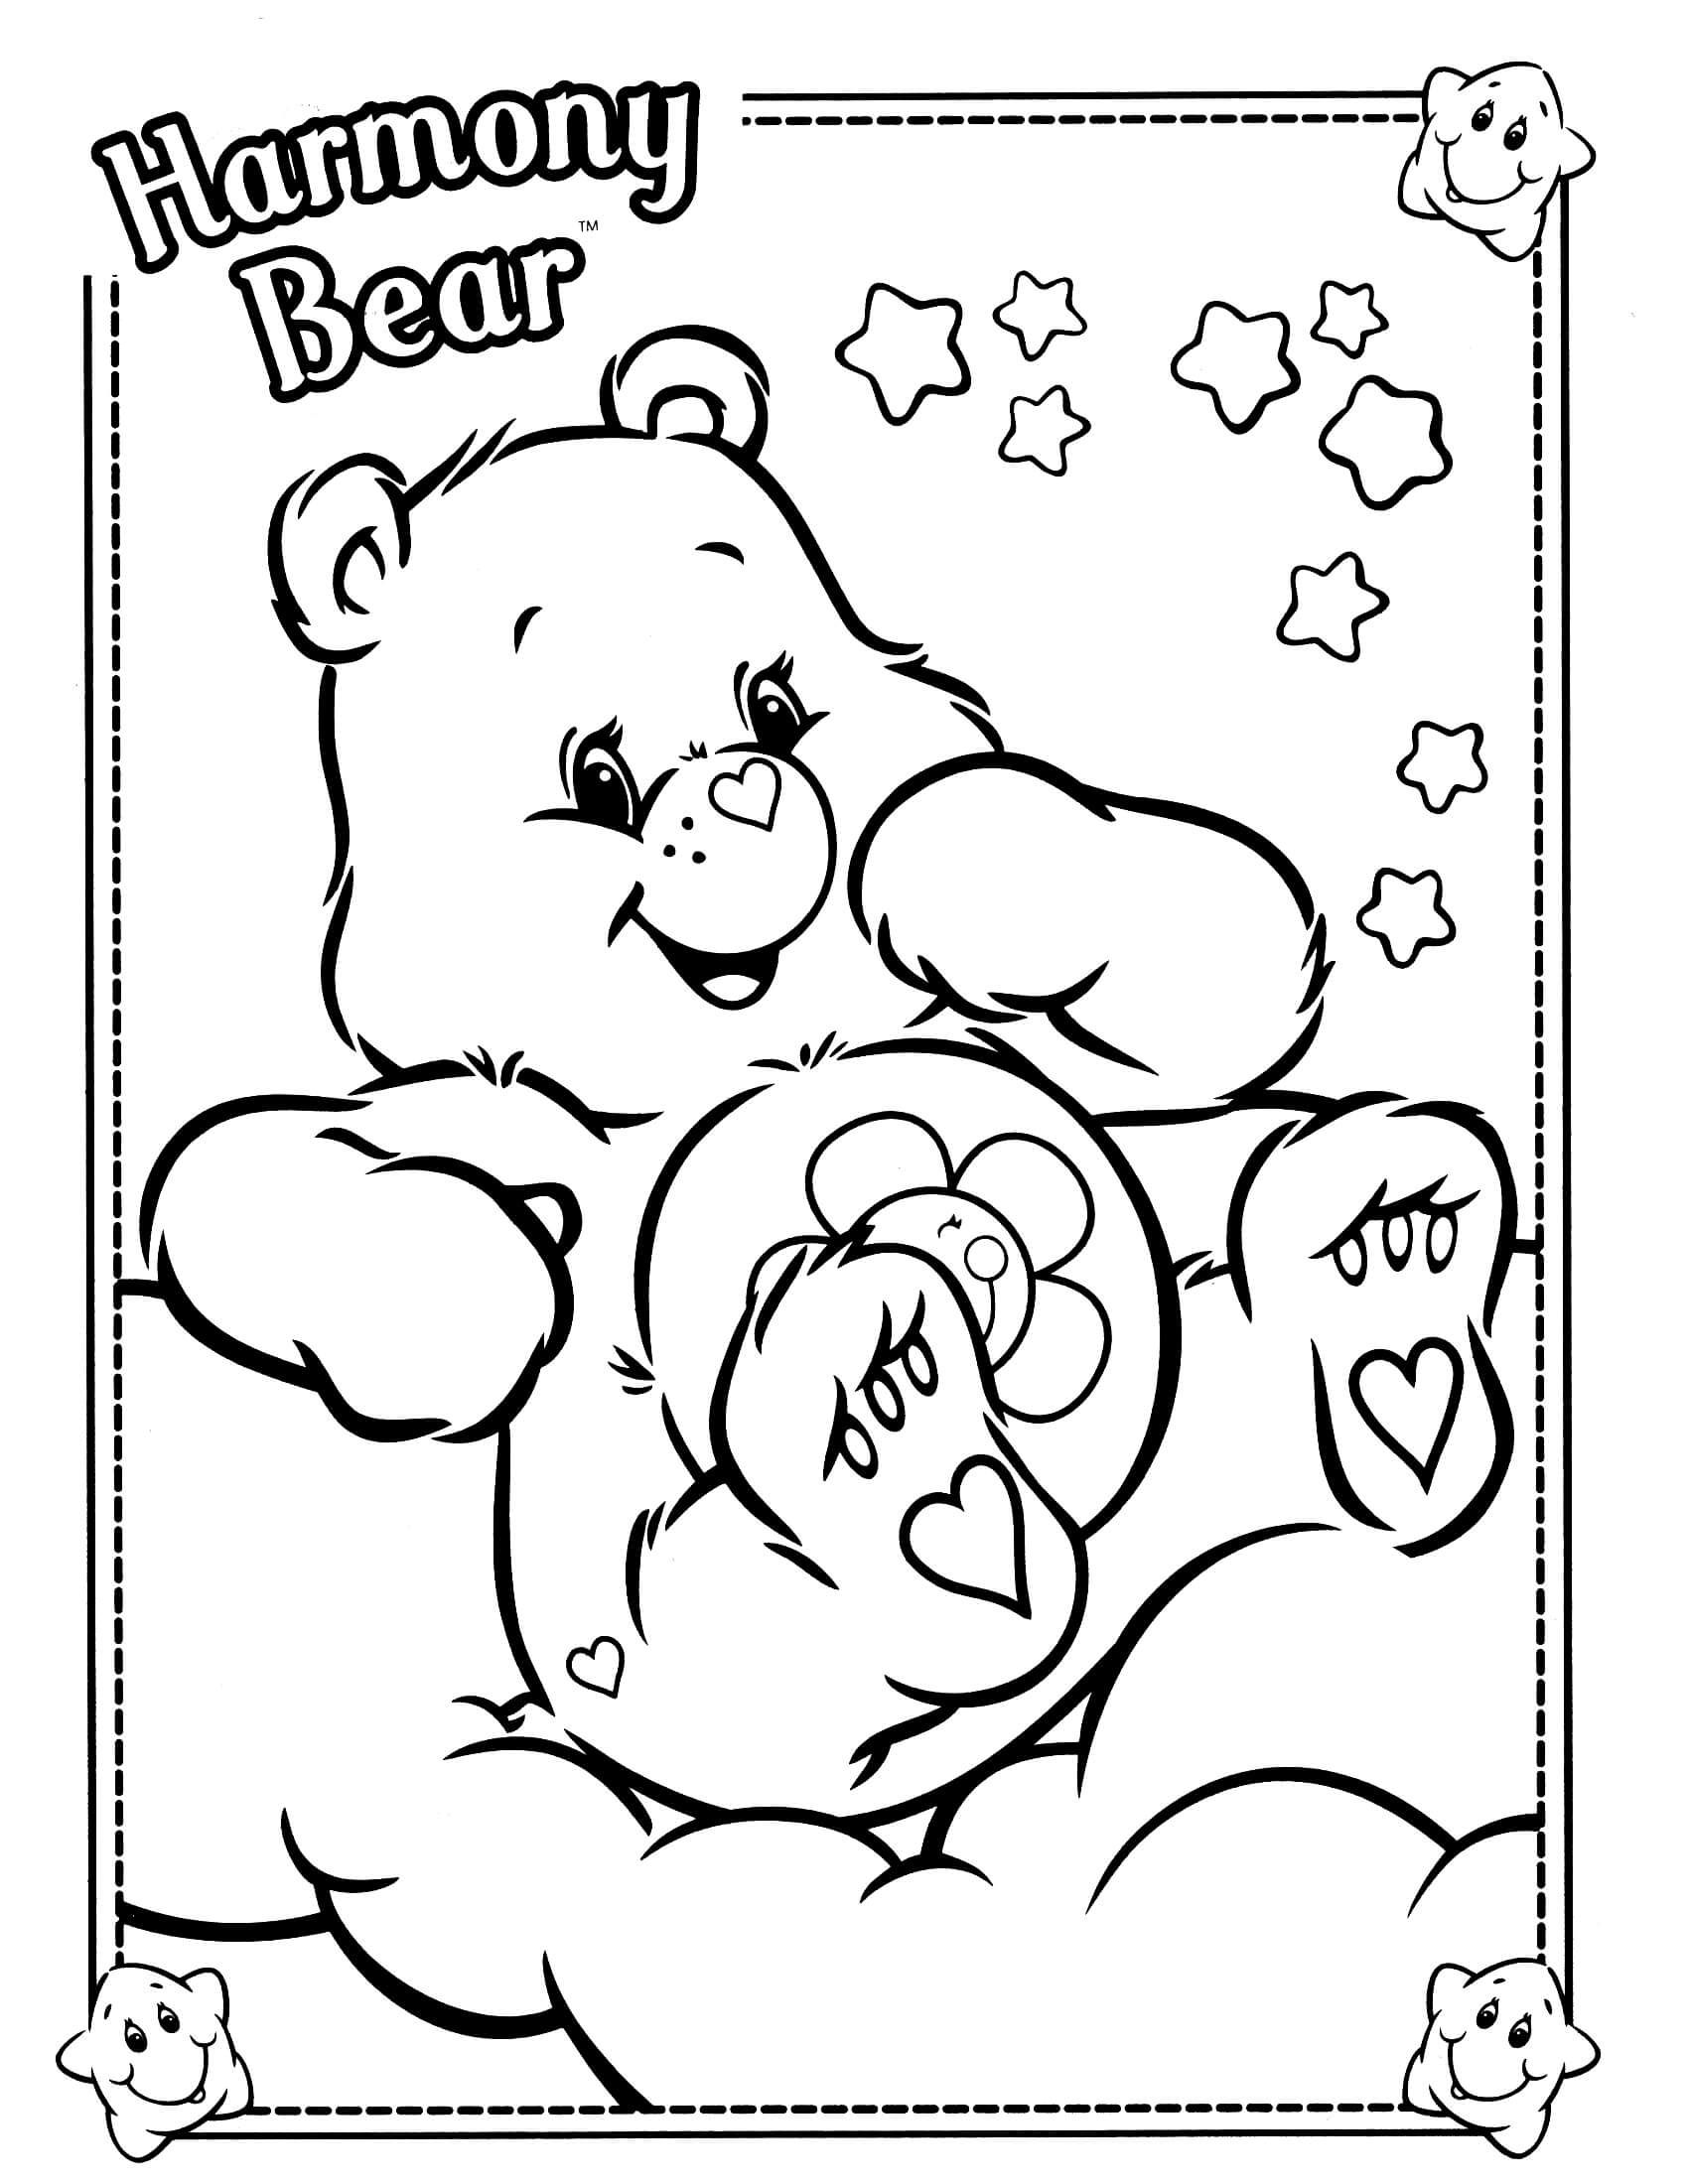 Care Bears Coloring Page Bear Coloring Pages Coloring Pages Coloring Books